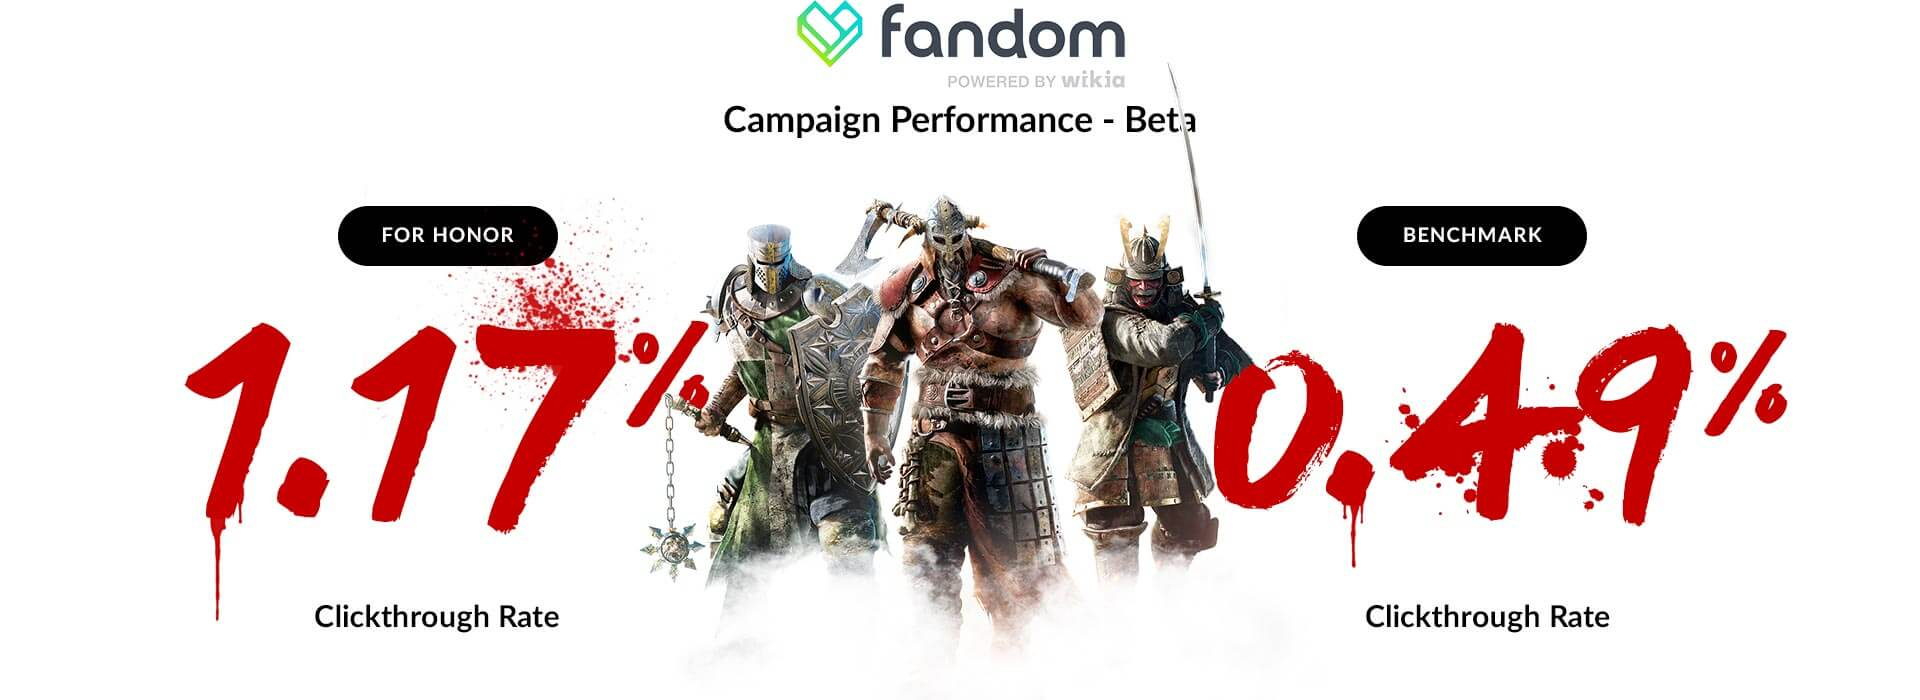 For Honor - Online Advertising image